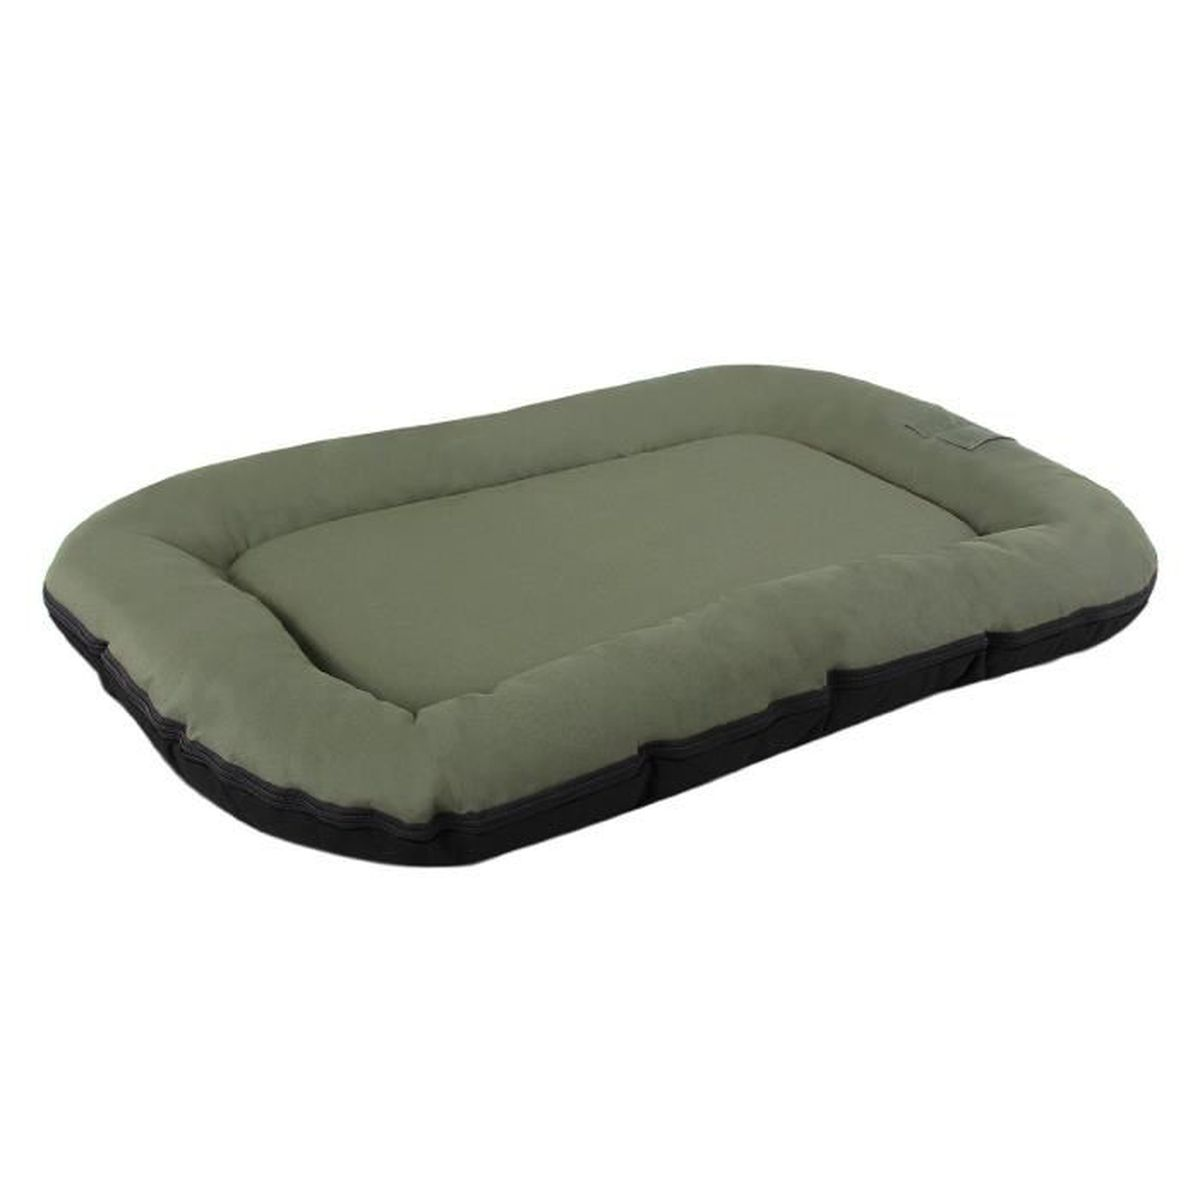 matelas pour chien 2 en 1 gris vert. Black Bedroom Furniture Sets. Home Design Ideas